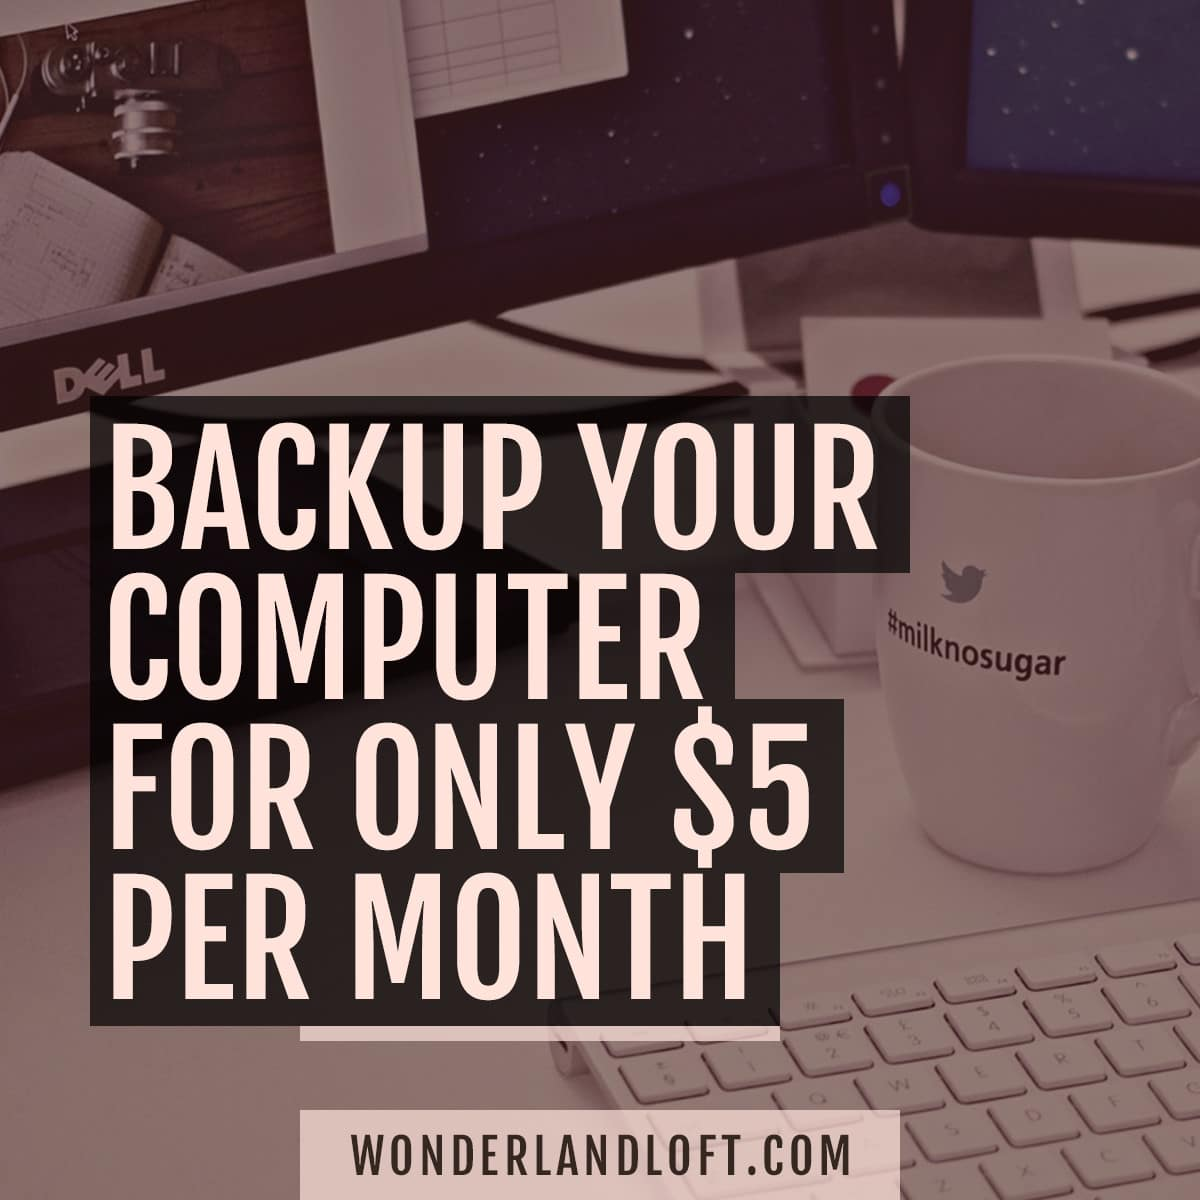 Backup your computer for $5